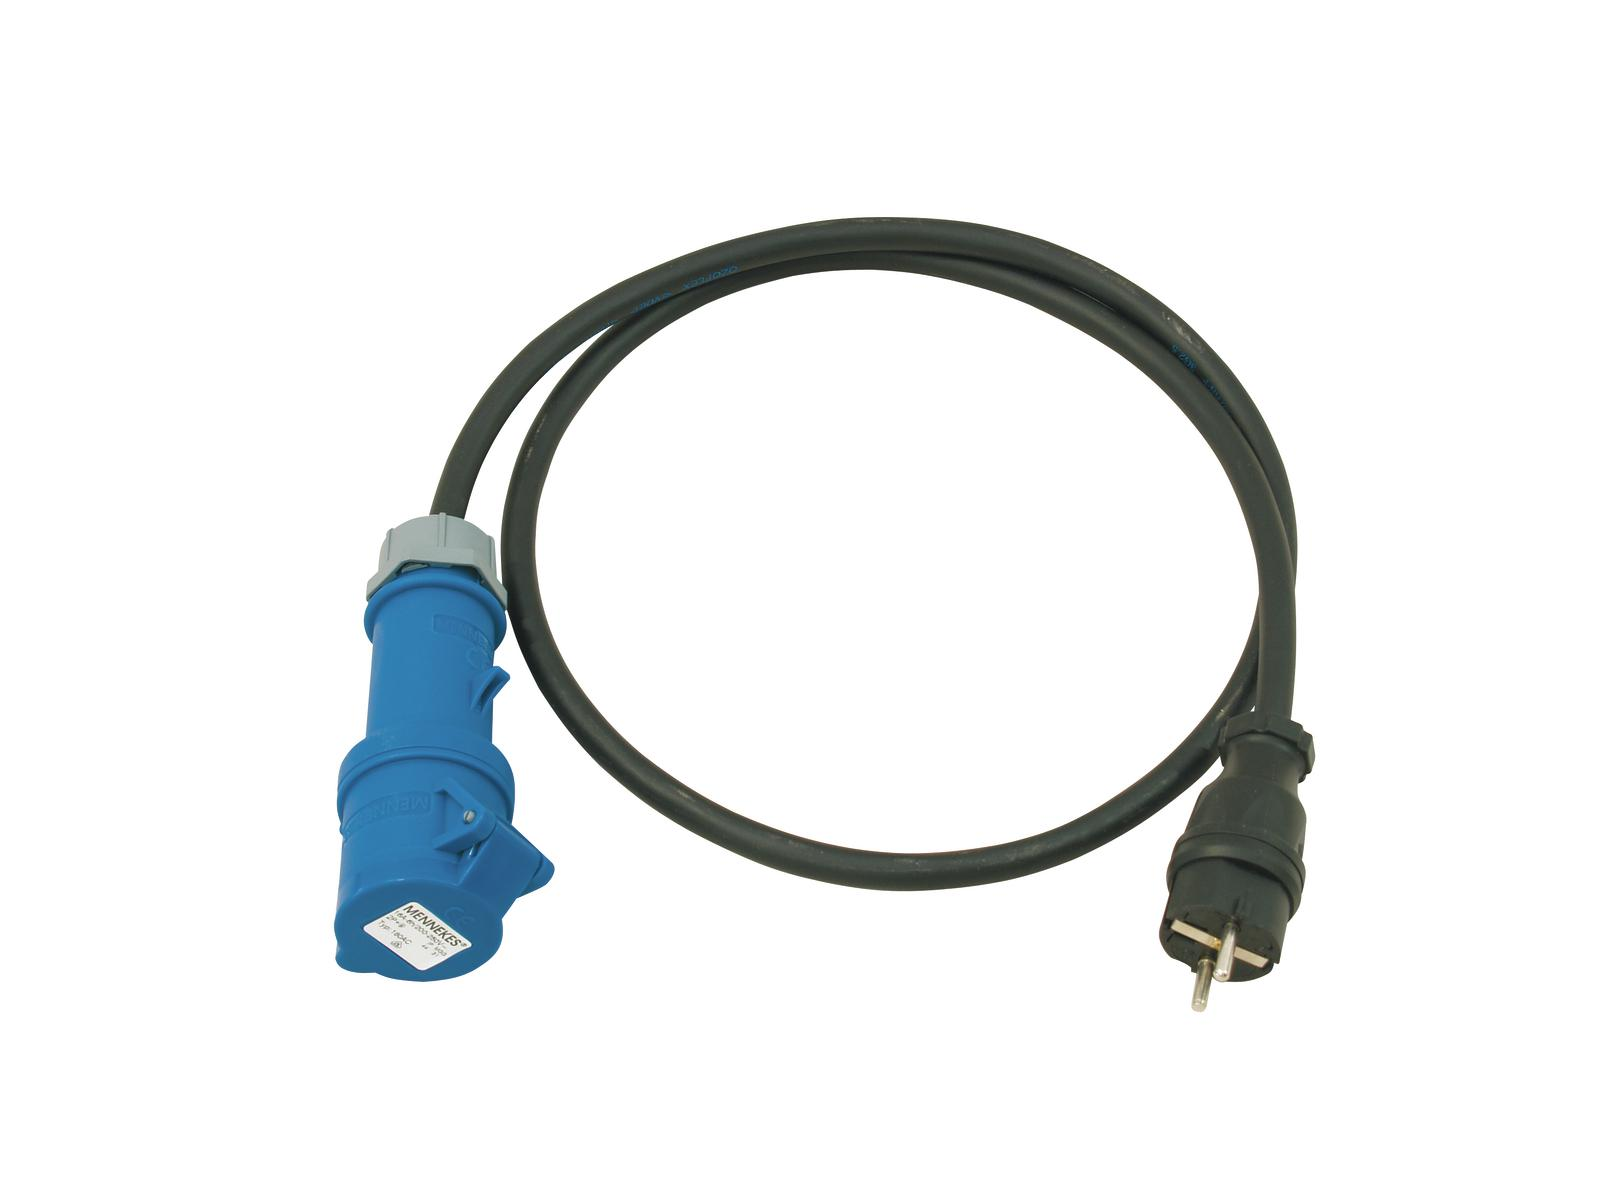 PSSO Adaptercable spina di Sic